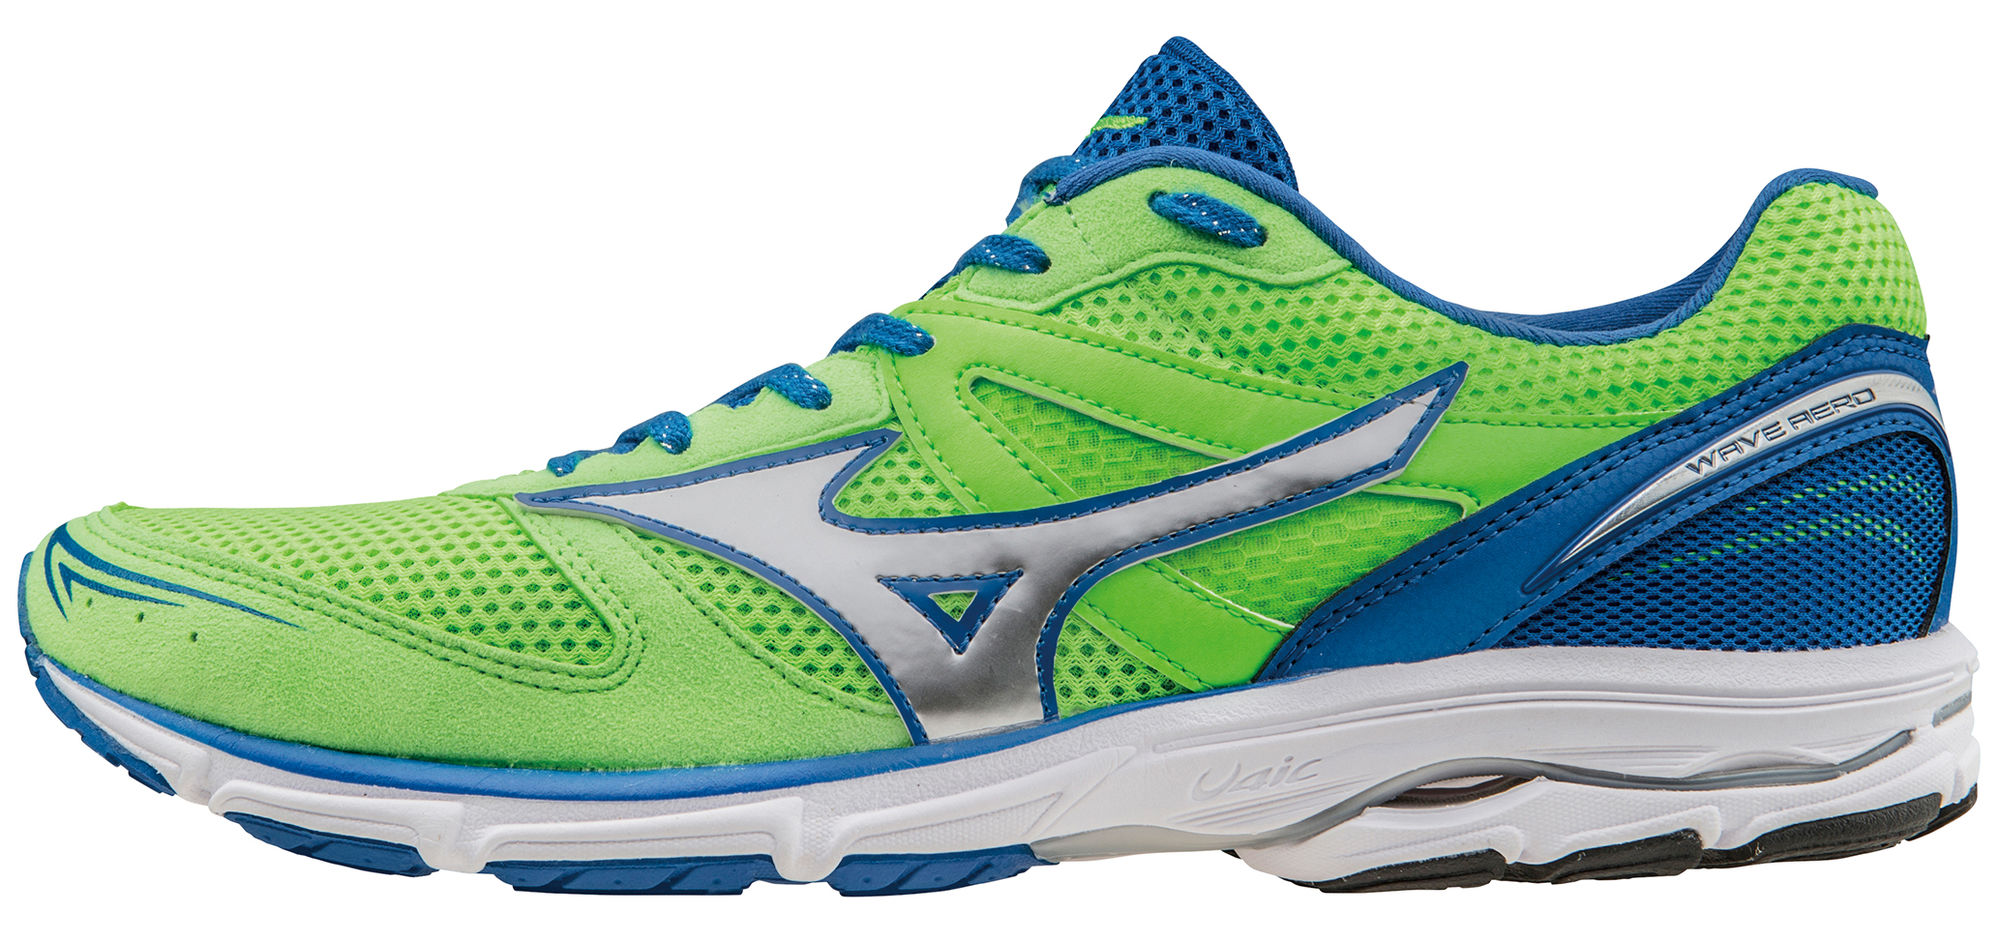 Mizuno Wave Aero 15 in Grün Blau